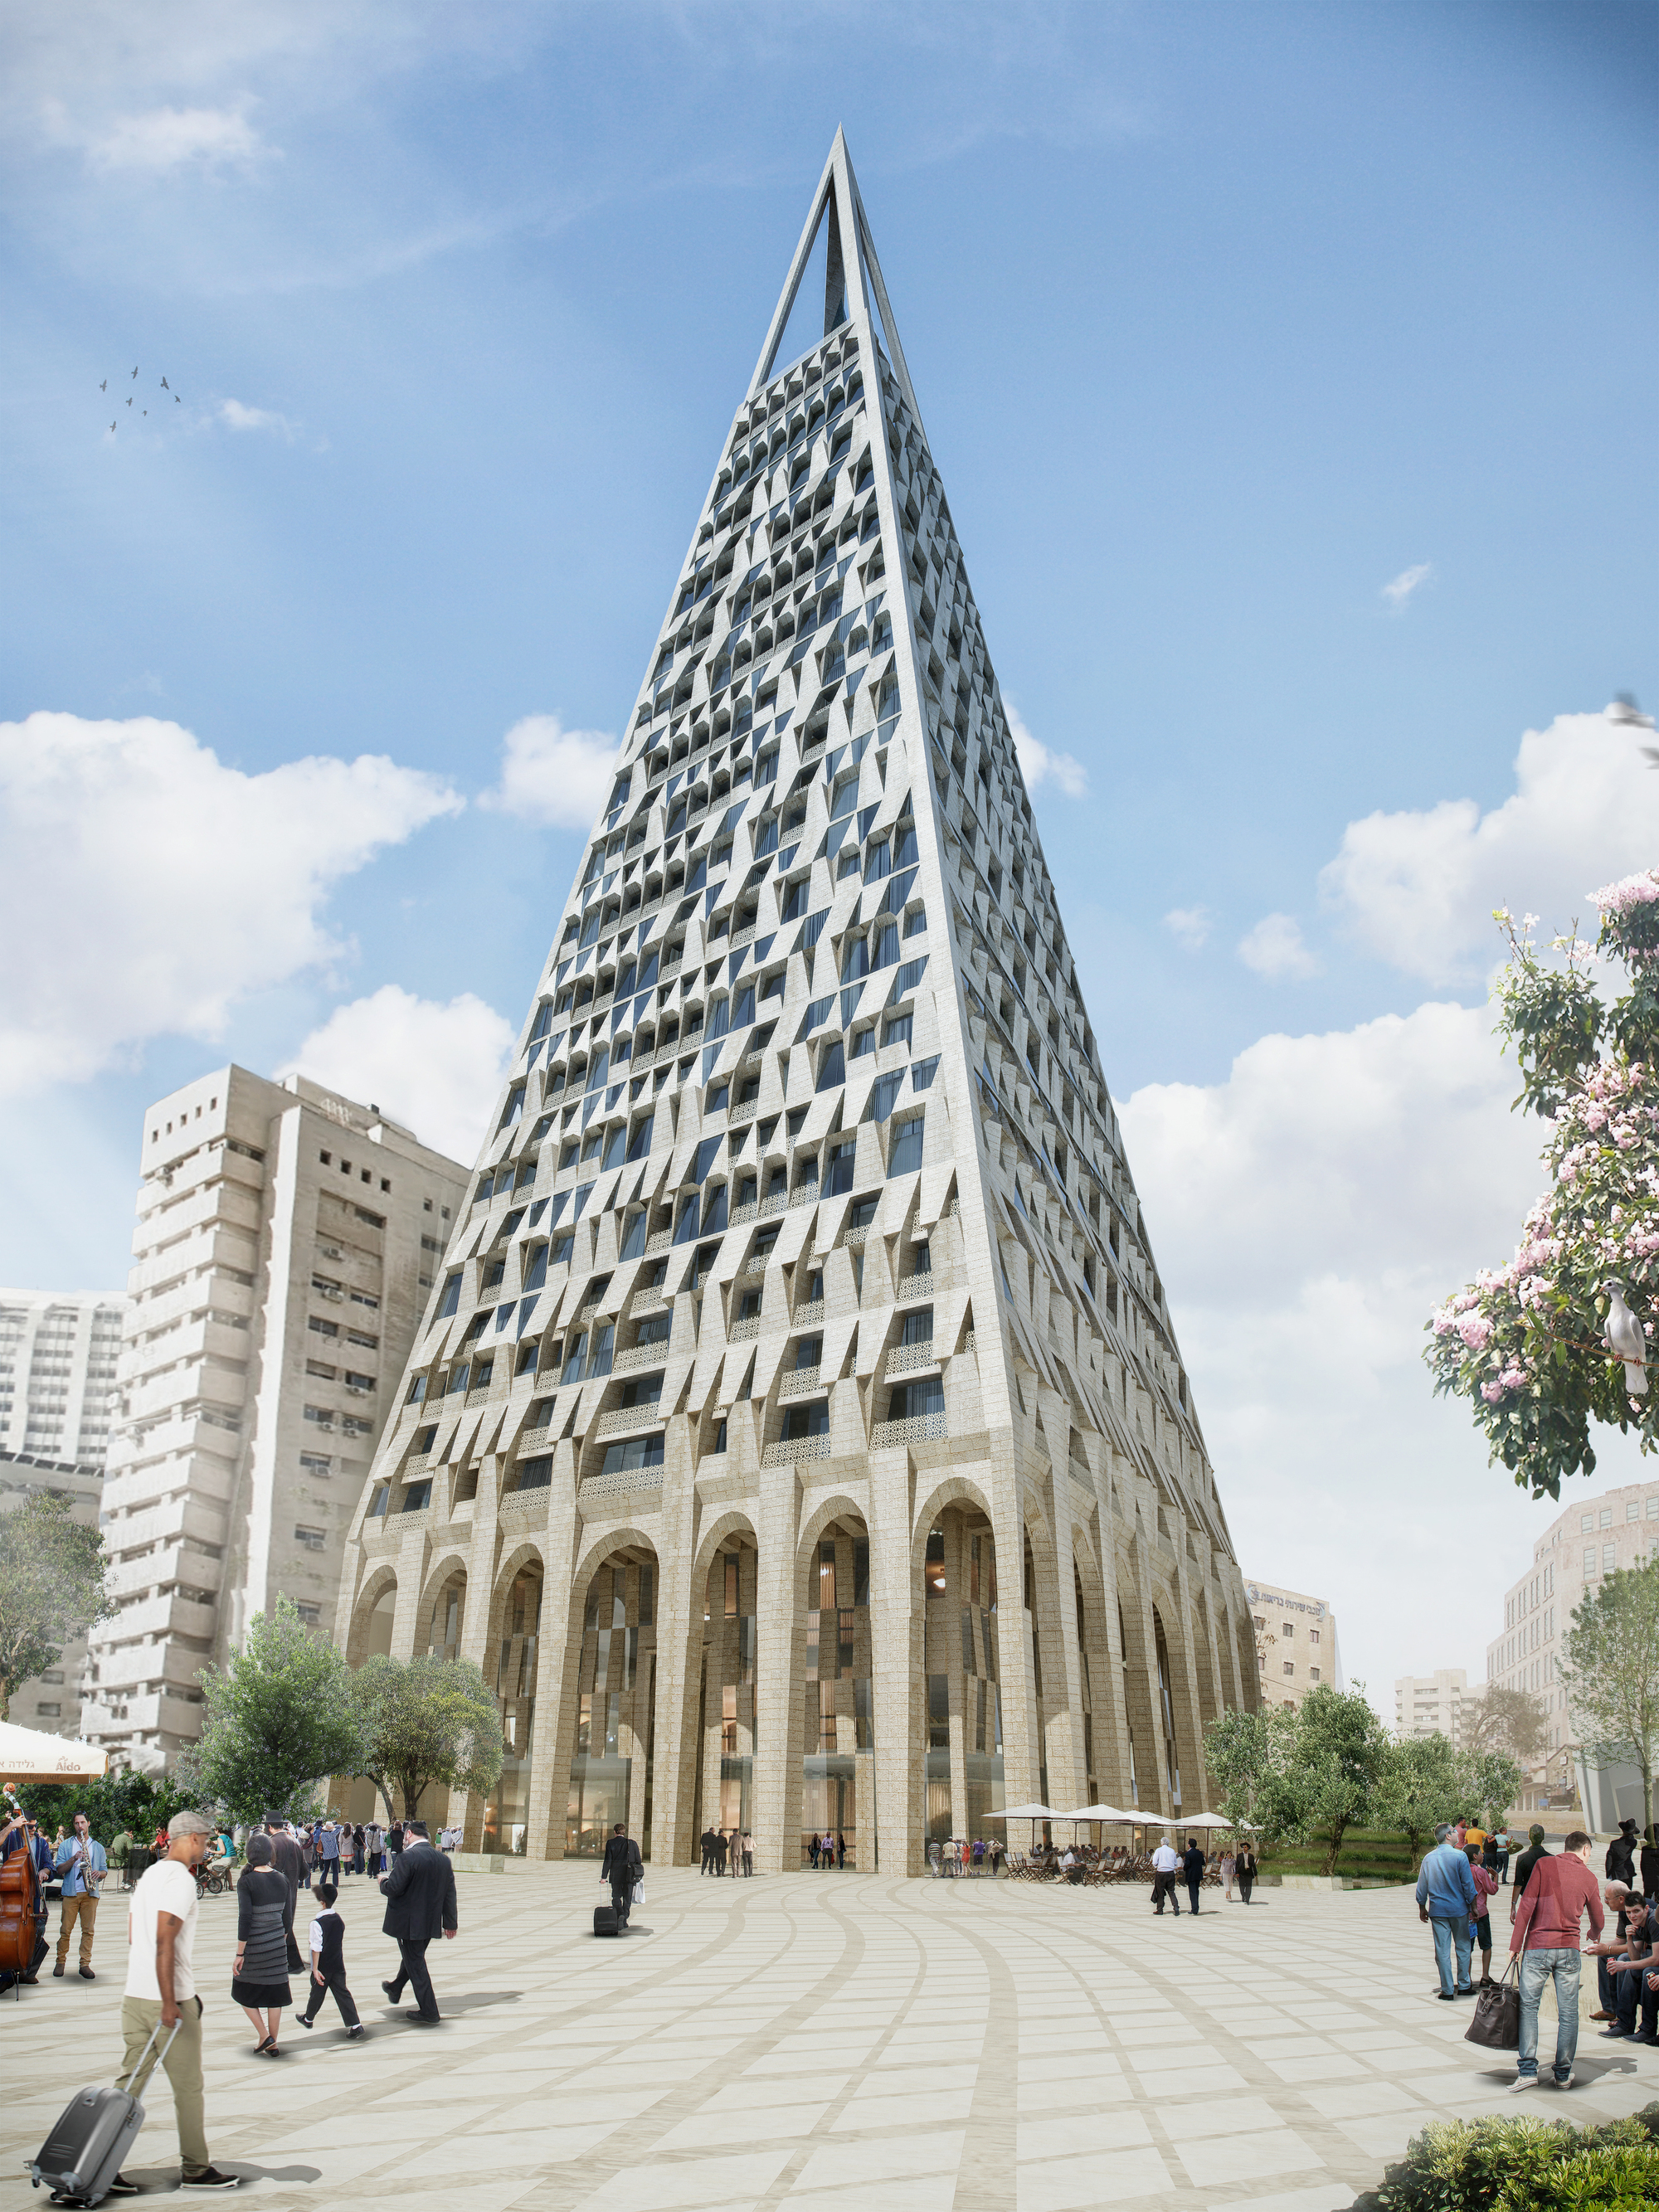 Daniel libeskind to build pyramid tower in jerusalem for Daniel libeskind architectural style